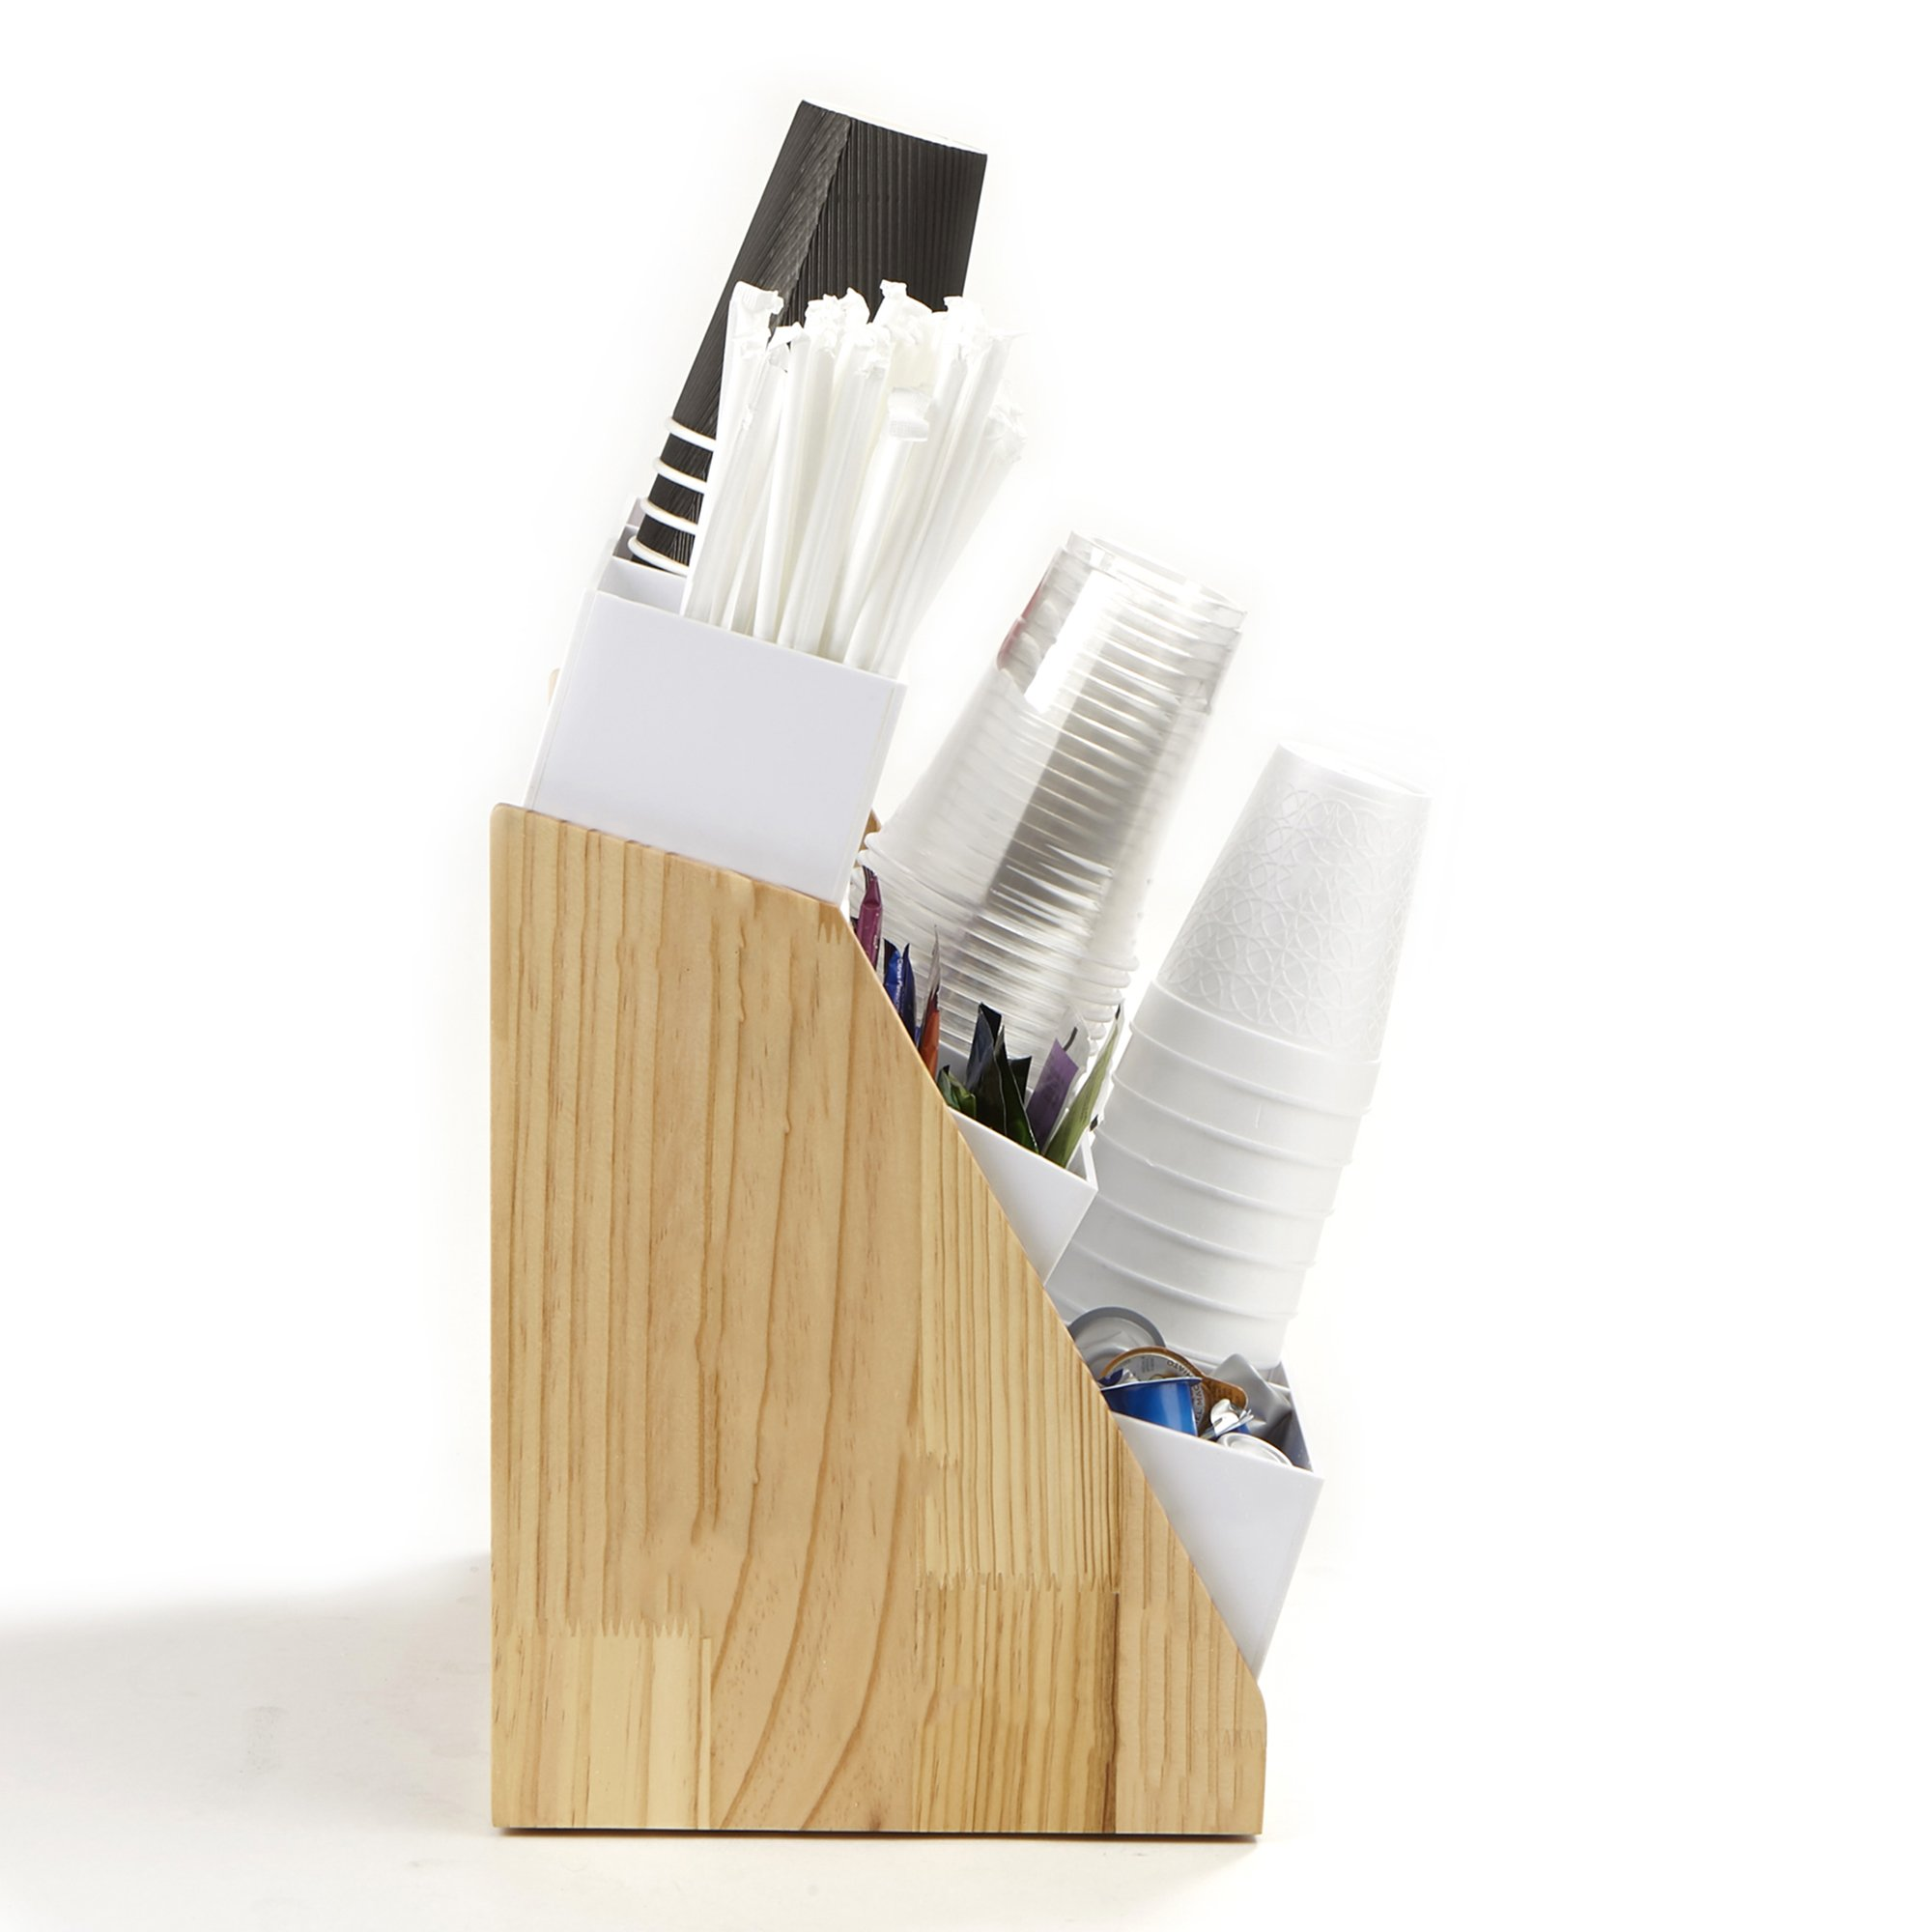 Mind Reader Condiment and Accessories Organizer, 9 Compartments, Wood by Mind Reader (Image #6)